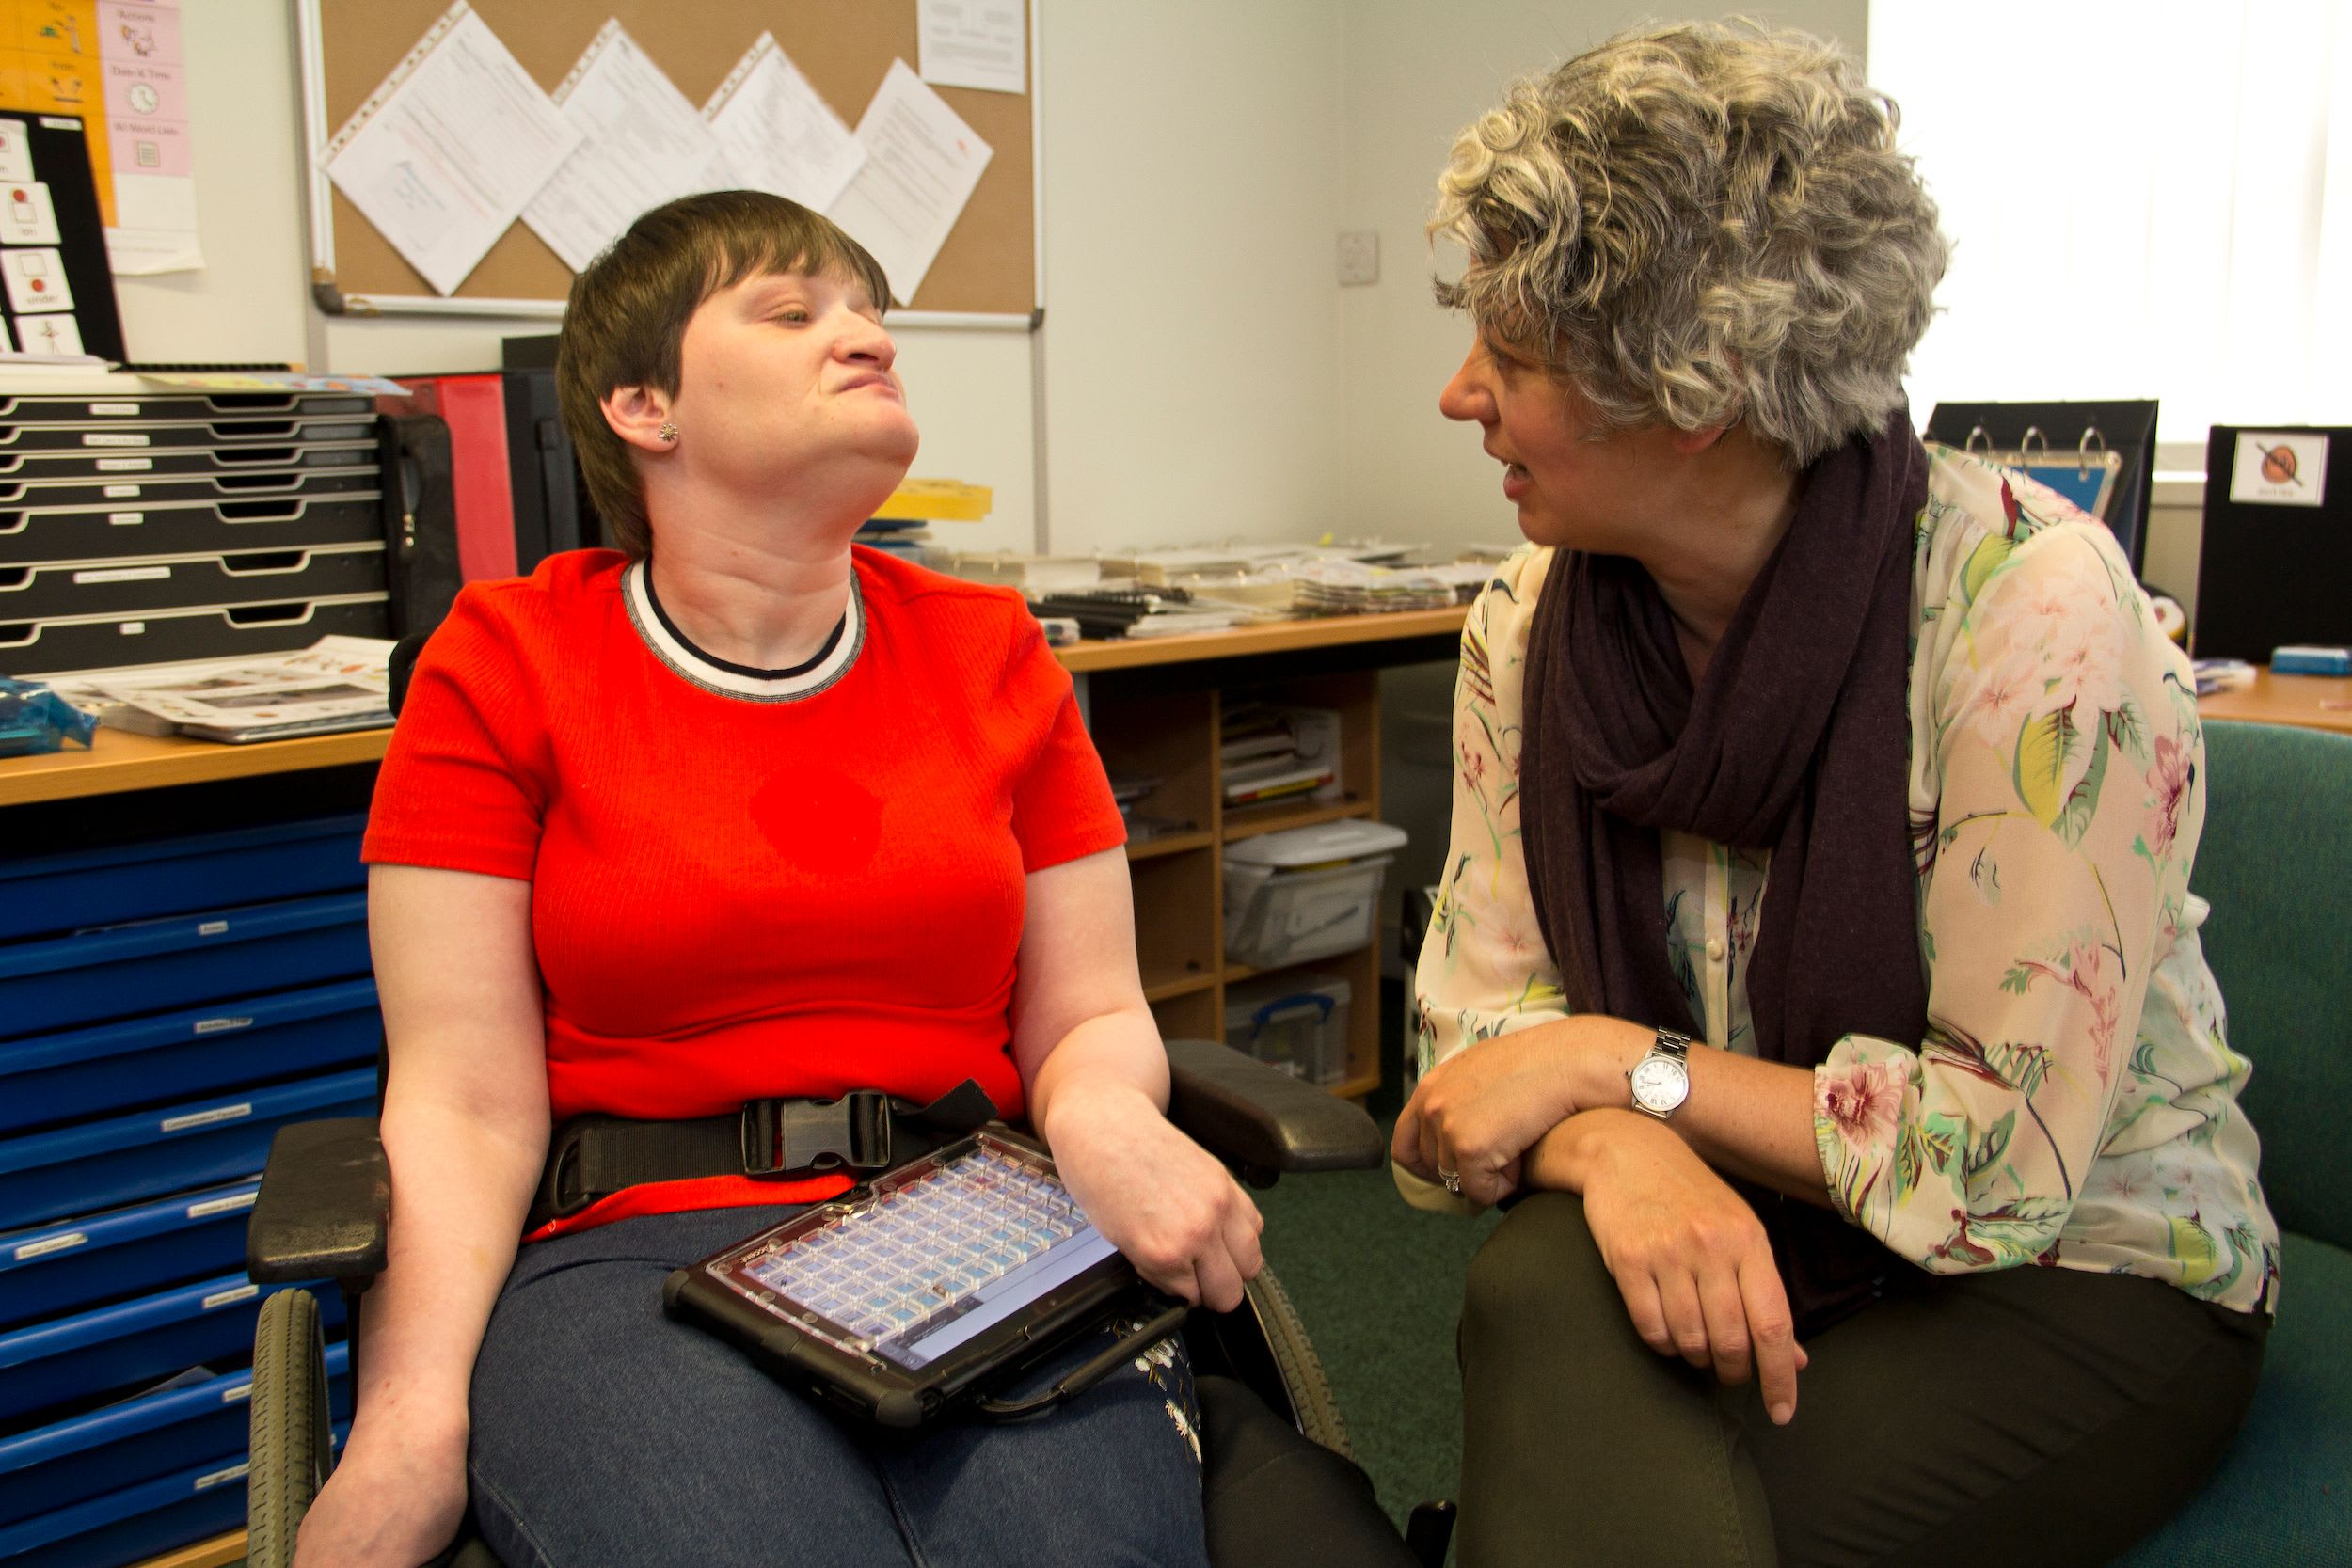 Two people talking, one using AAC